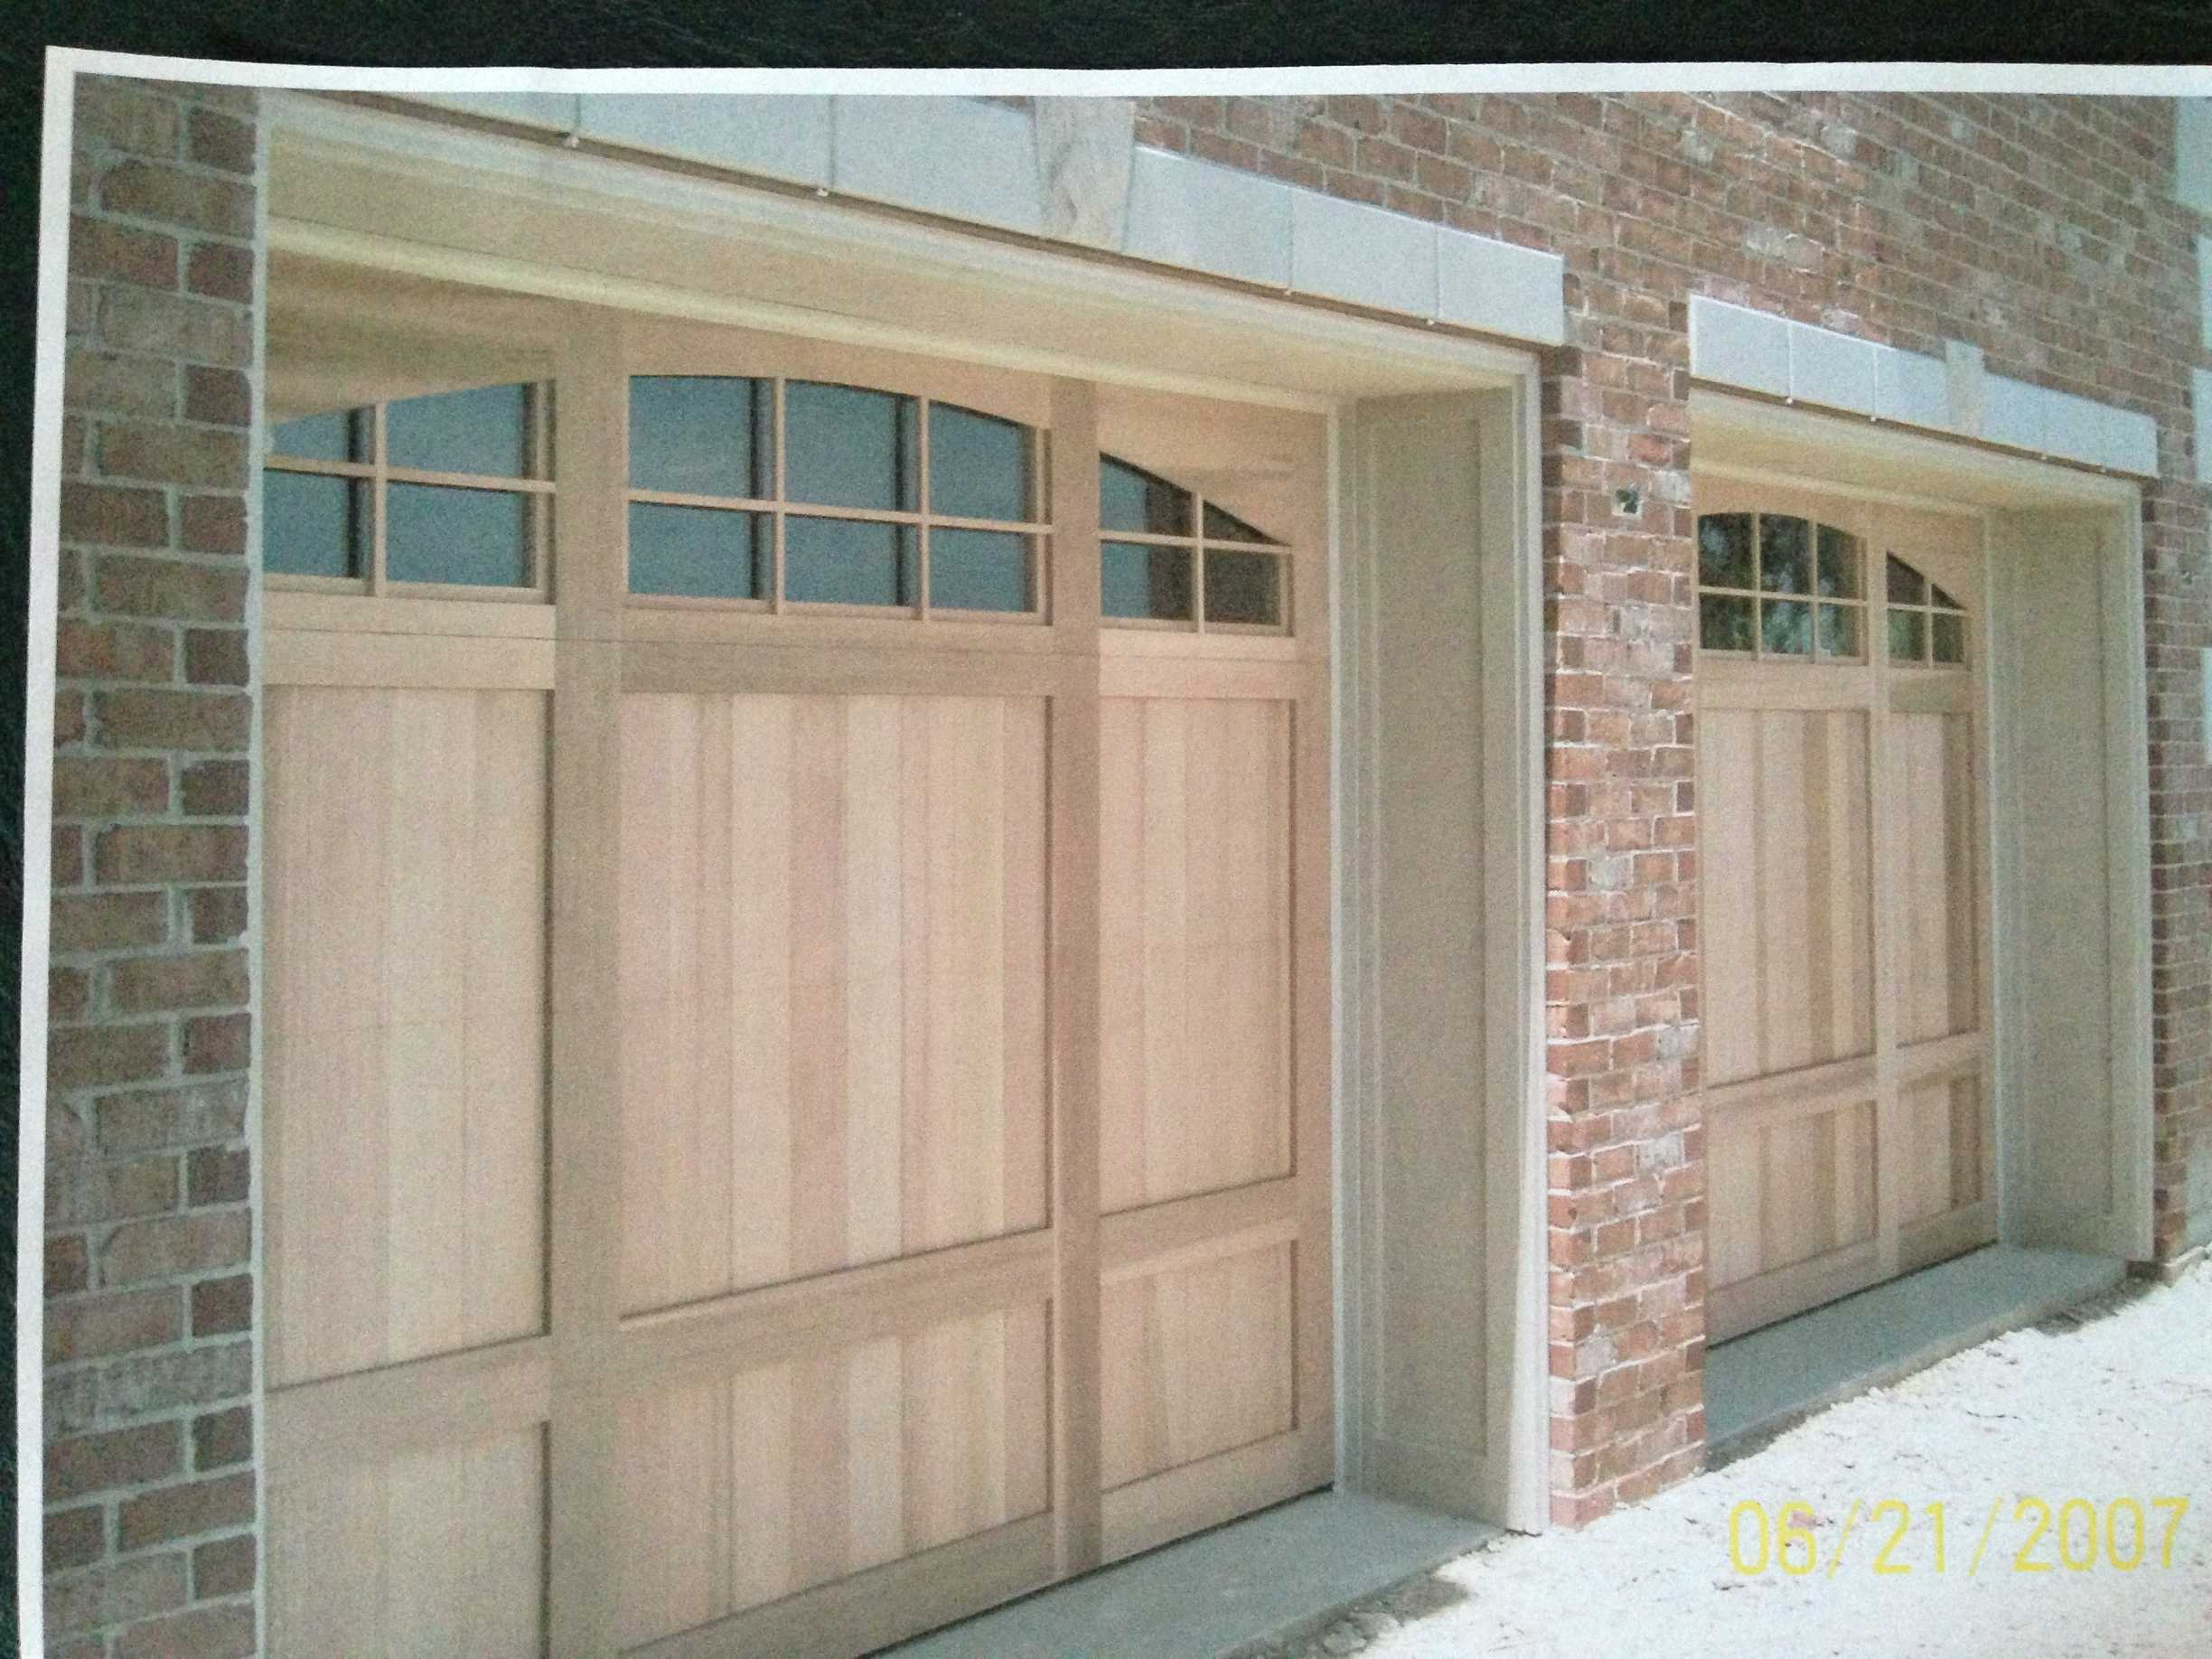 Insulated garage doors greenfield garage door repair garage door milwaukee garage doors garage door installation garage doors milwaukee greenfield garage solutioingenieria